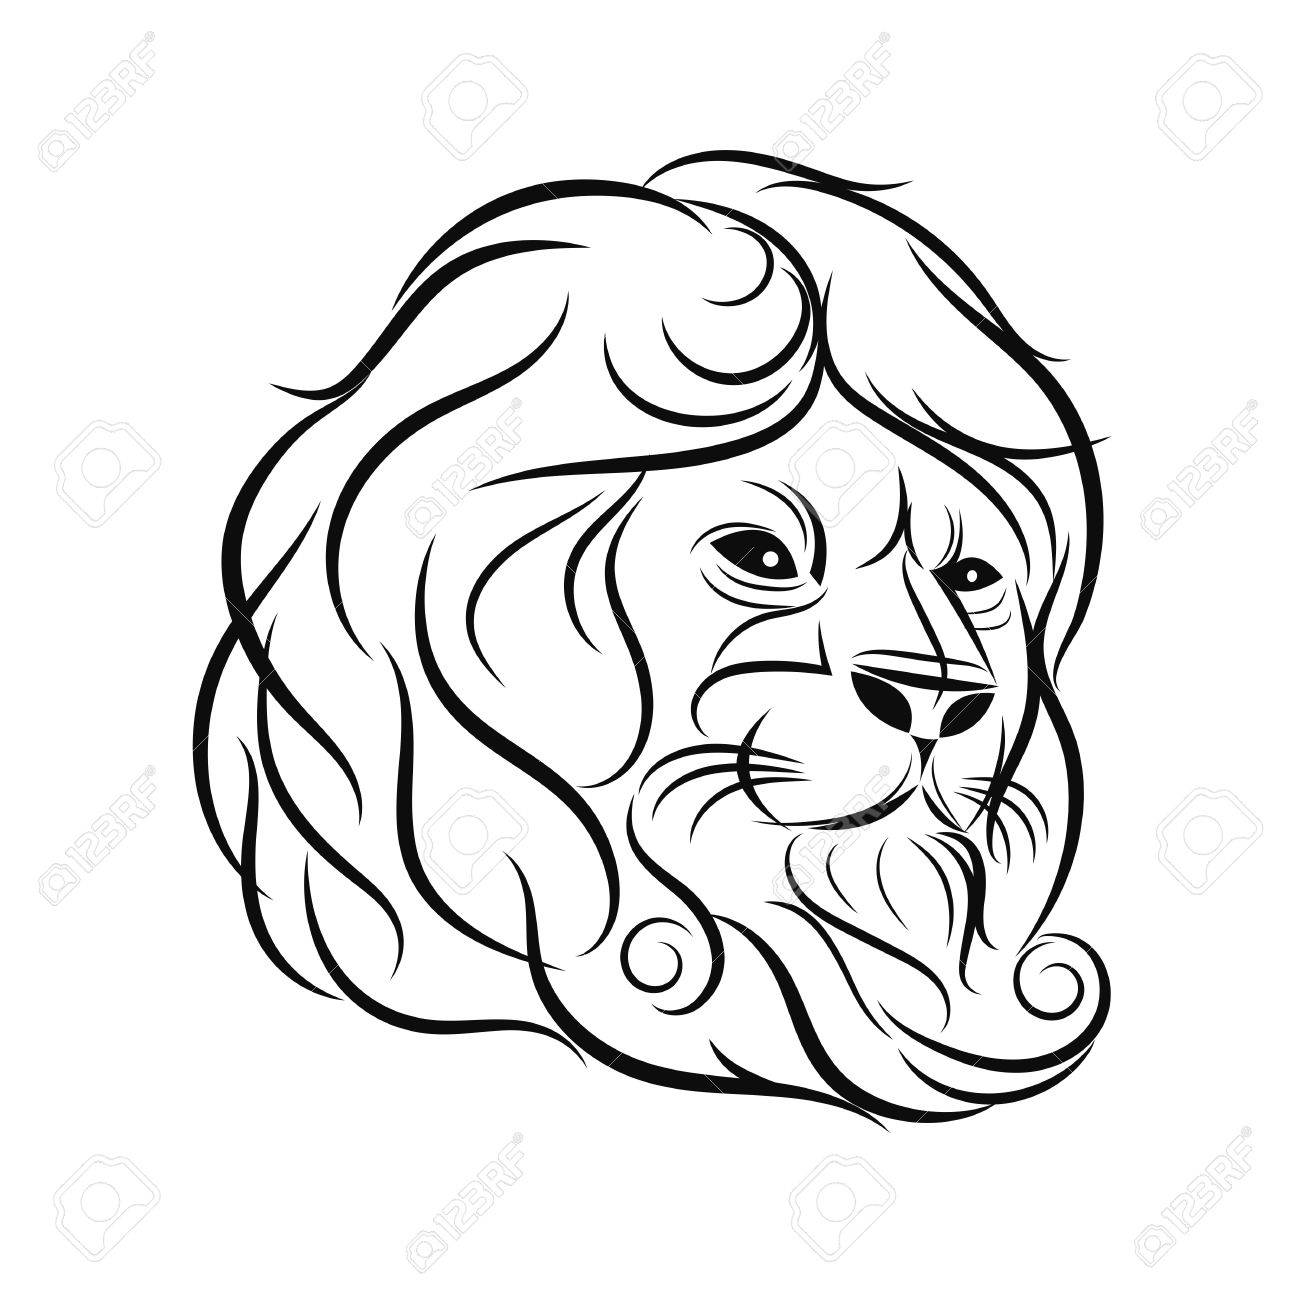 Simple lion head drawing